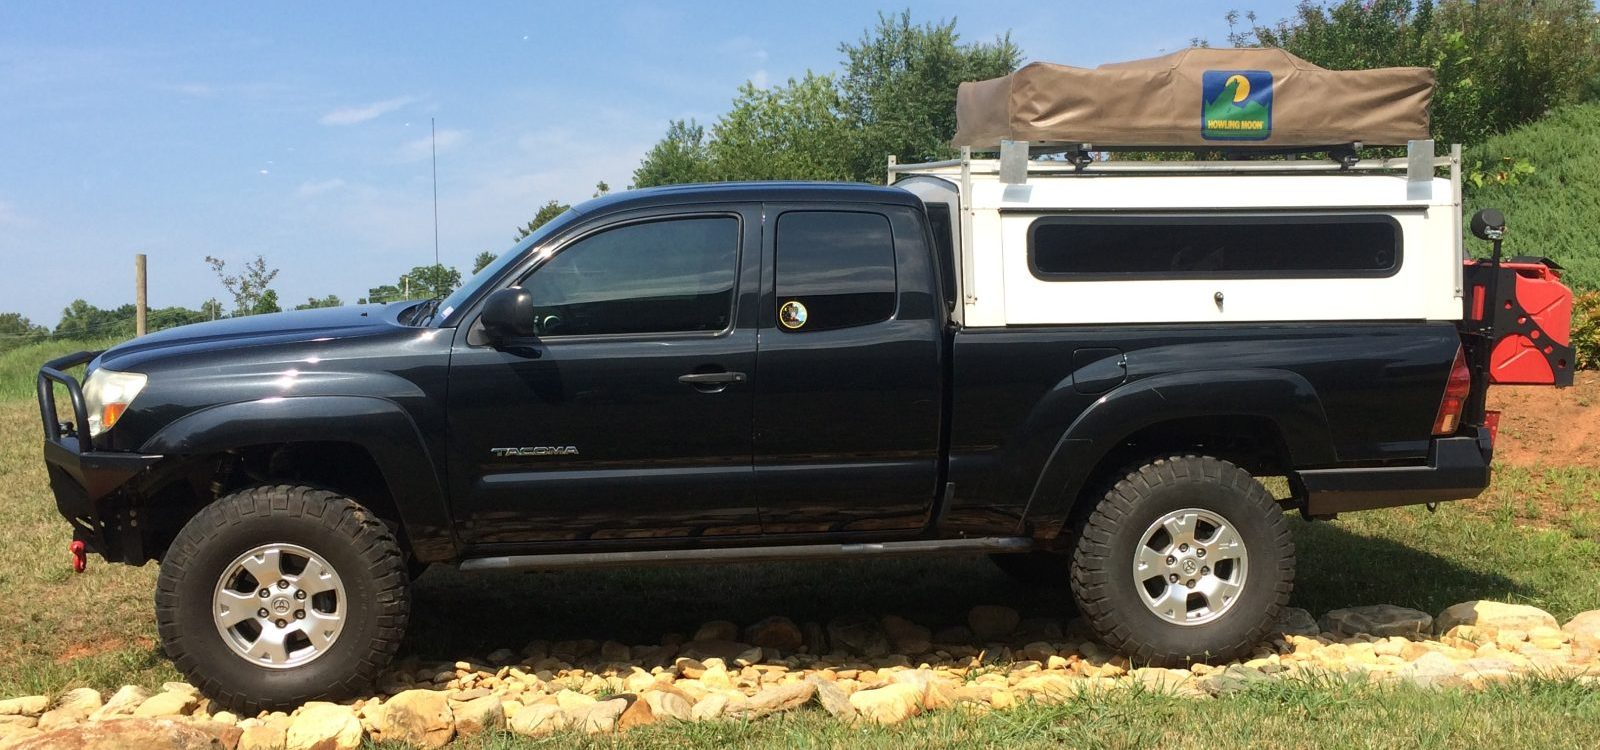 Ryan Bartholomew's used Toyota Tacoma, side view